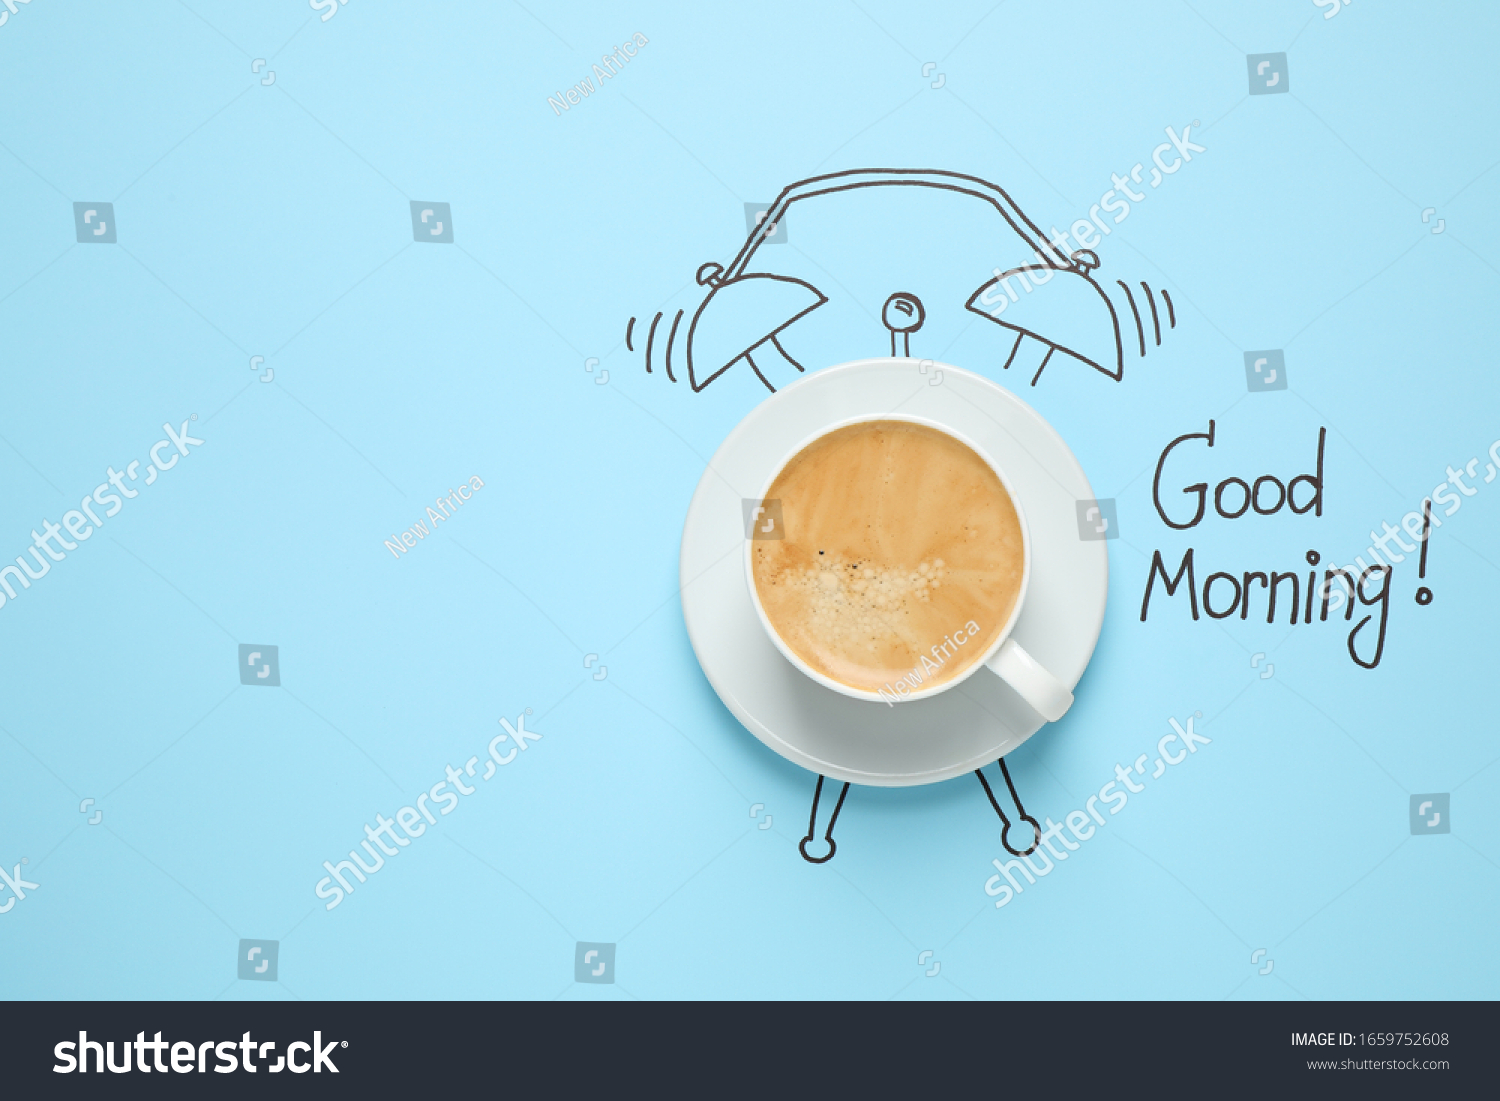 Composition with Good Morning wish and aromatic coffee on light blue background, top view. Space for text #1659752608